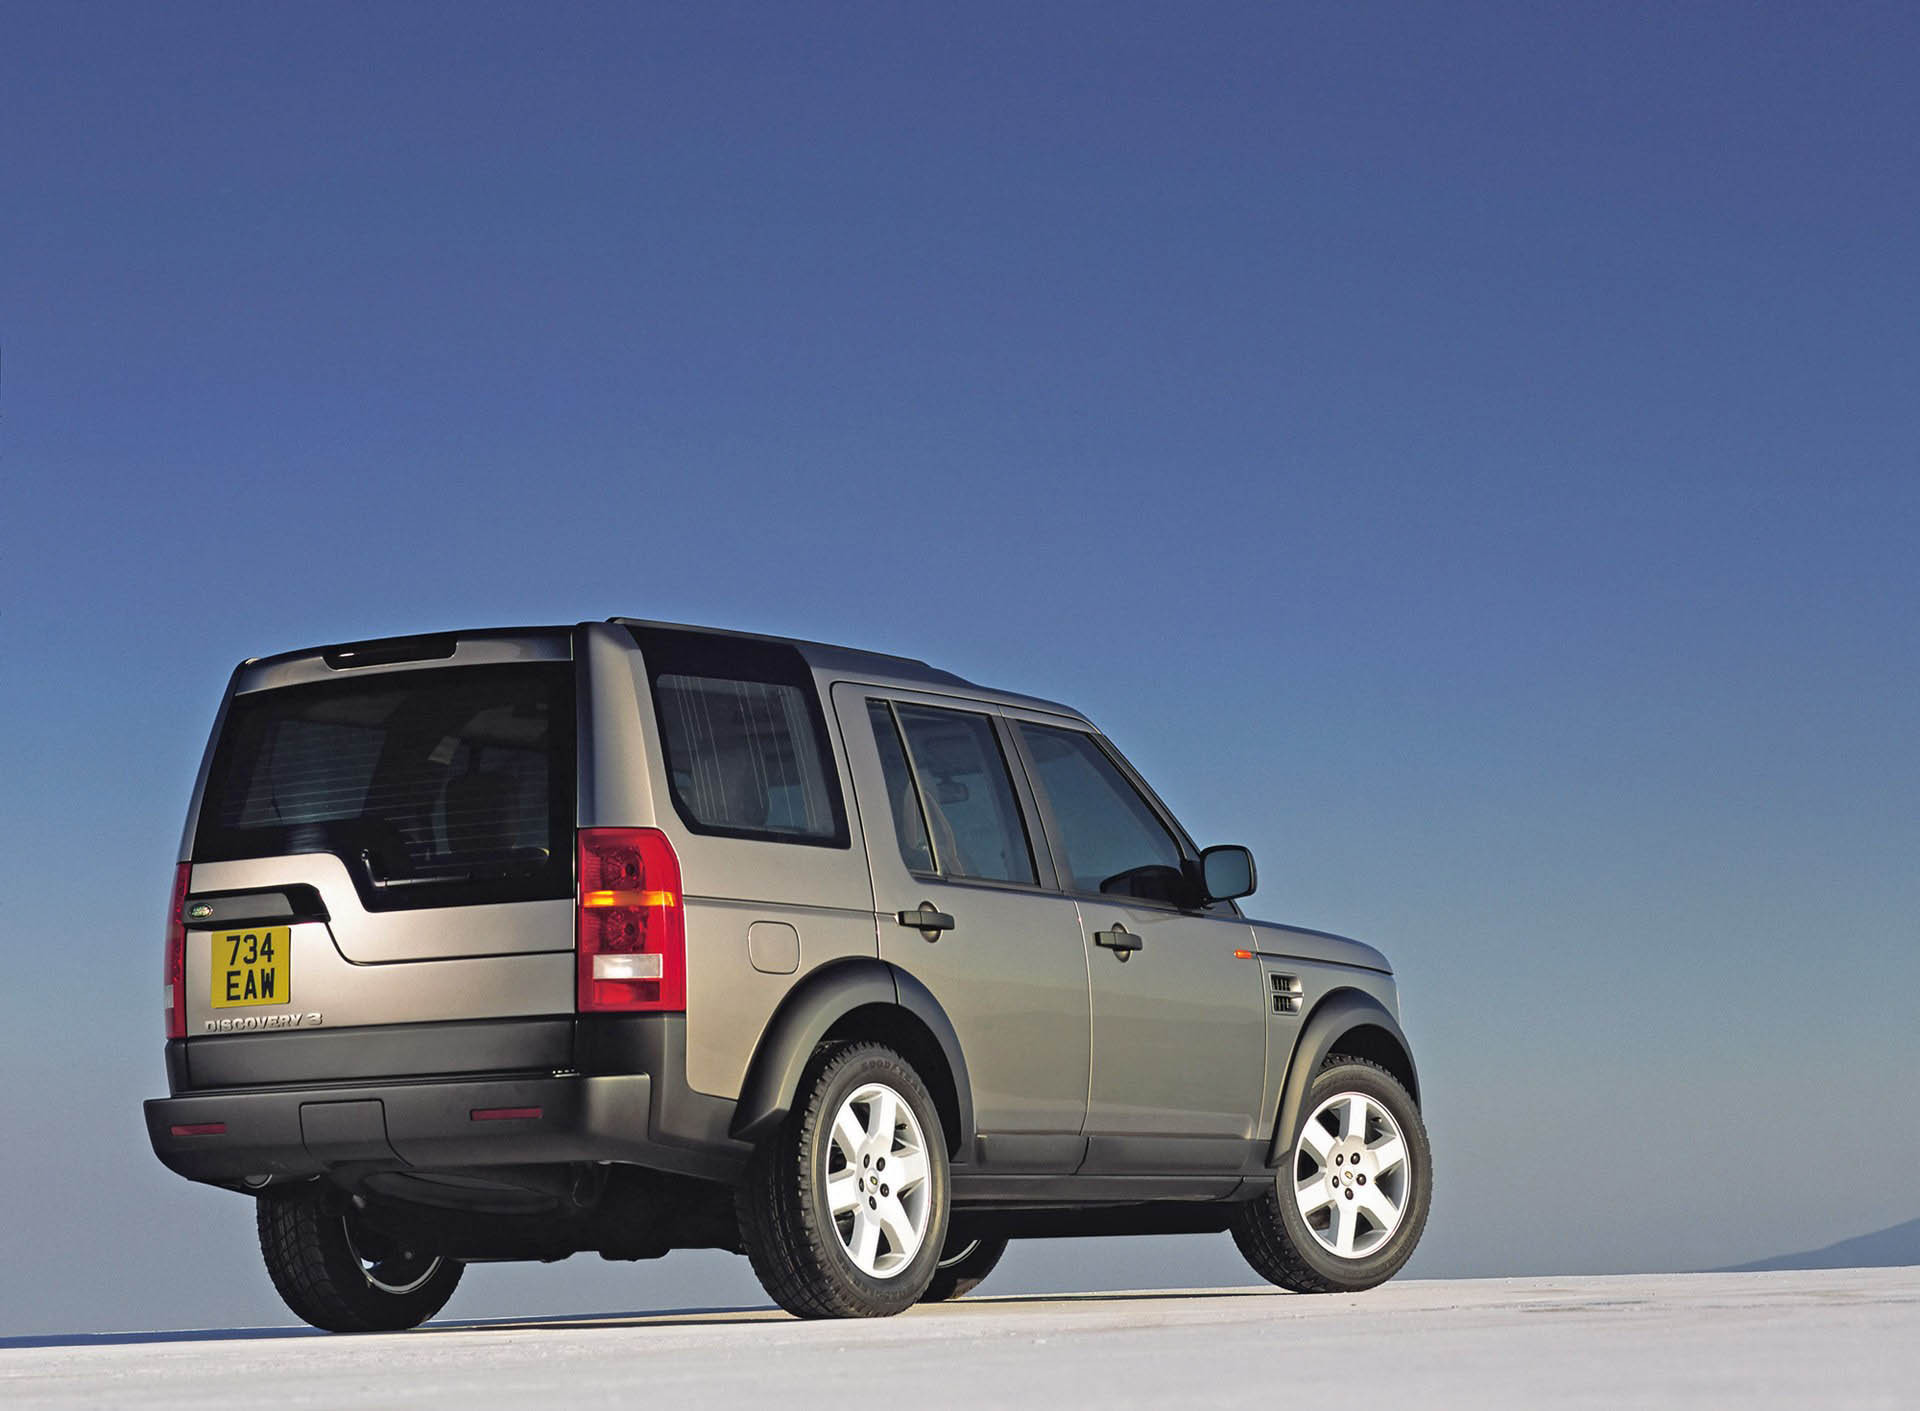 https://pictures.topspeed.com/IMG/jpg/200511/2005-landrover-discovery3-3.jpg